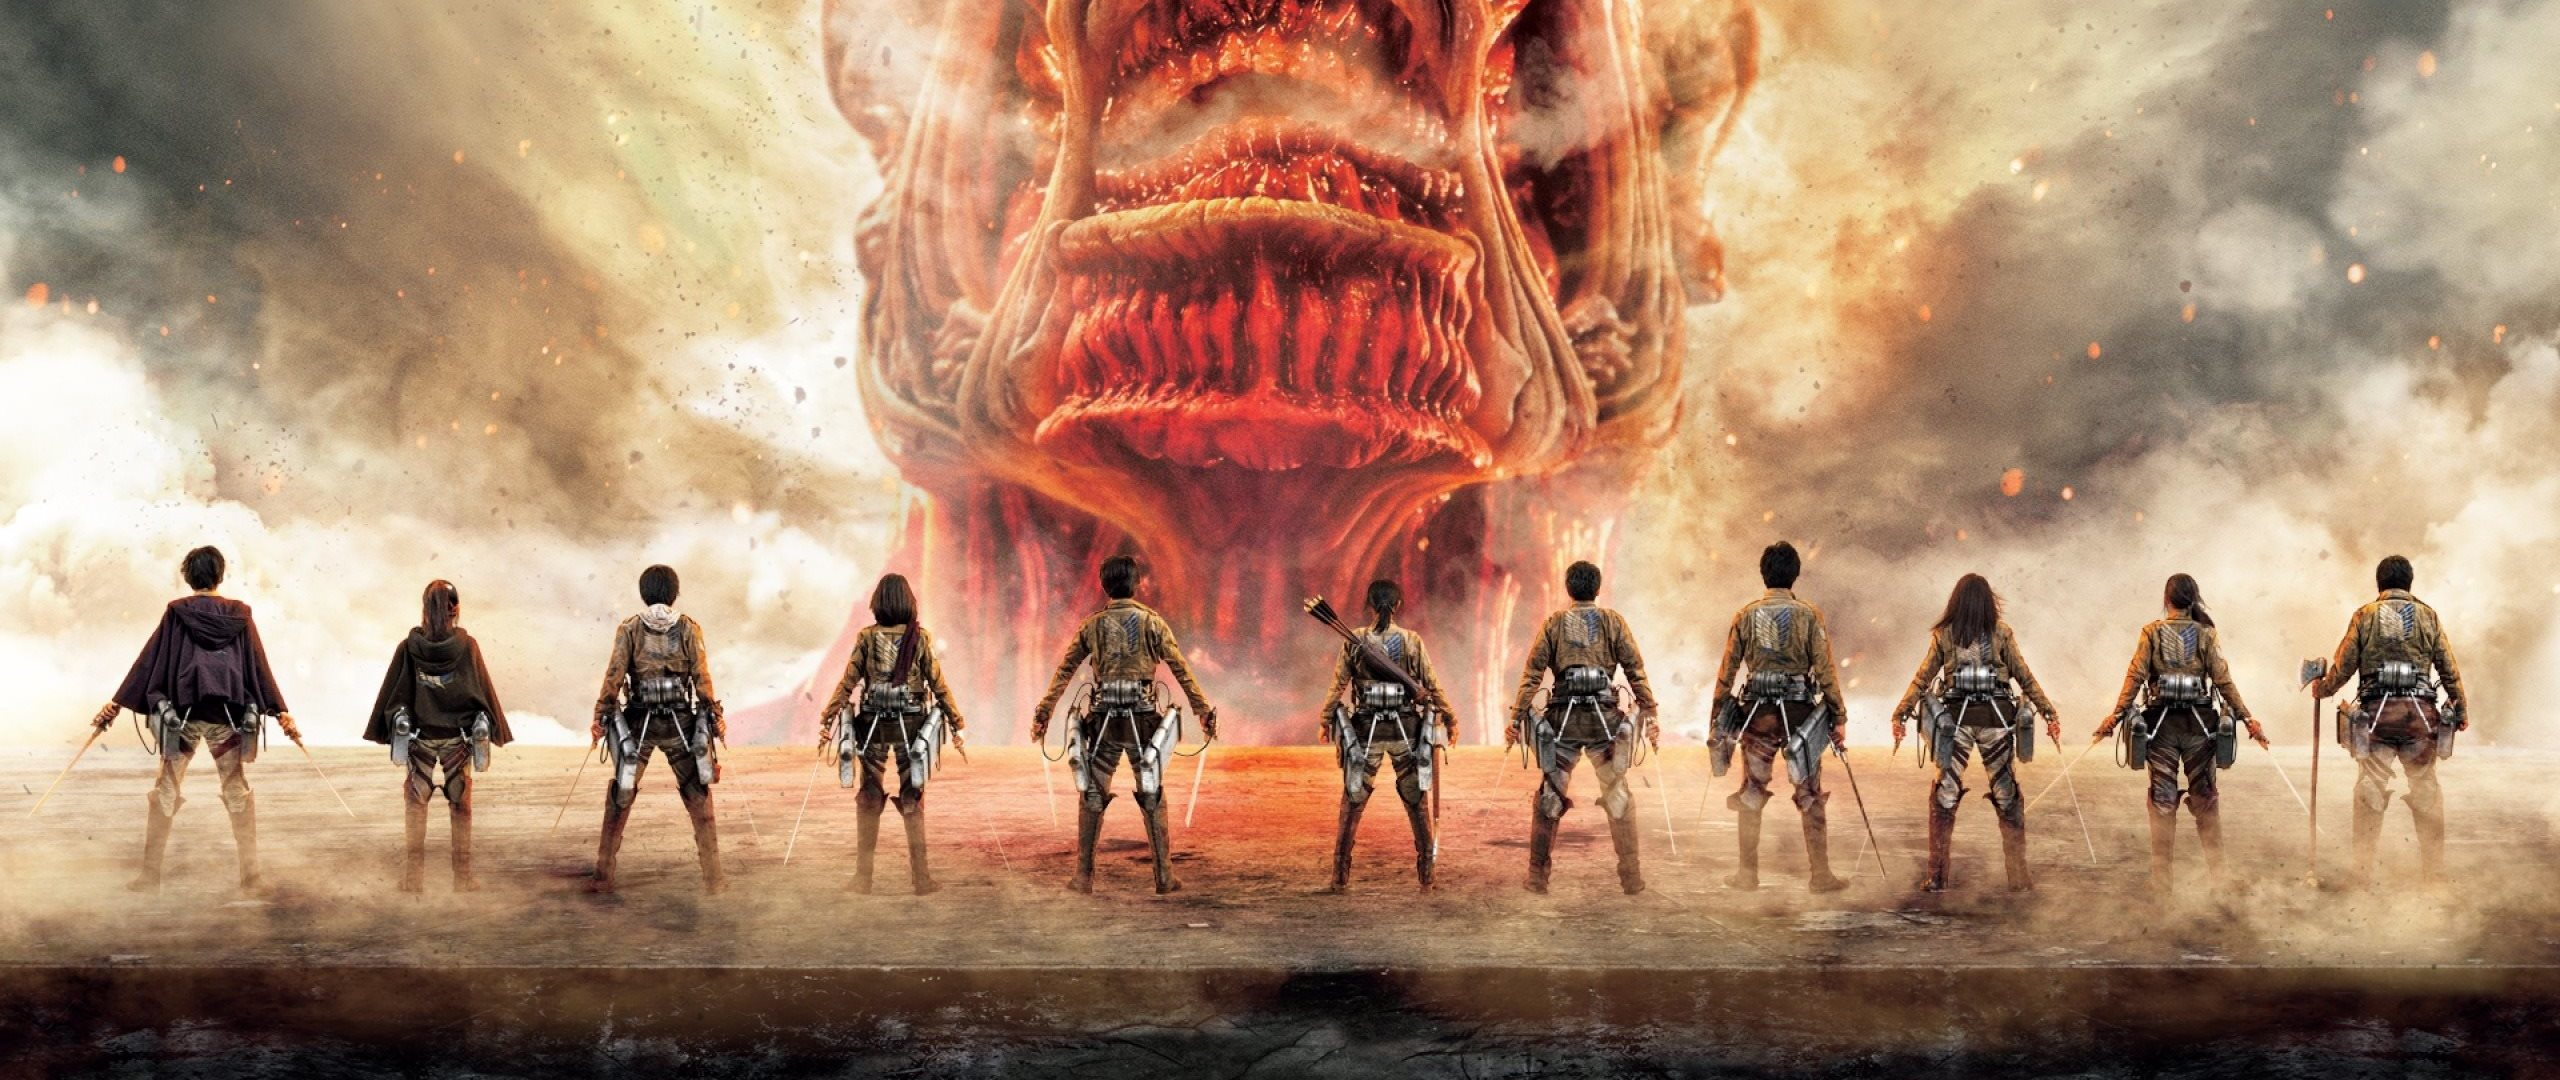 2560x1080 Attack On Titan Japanese TV Series Poster ...